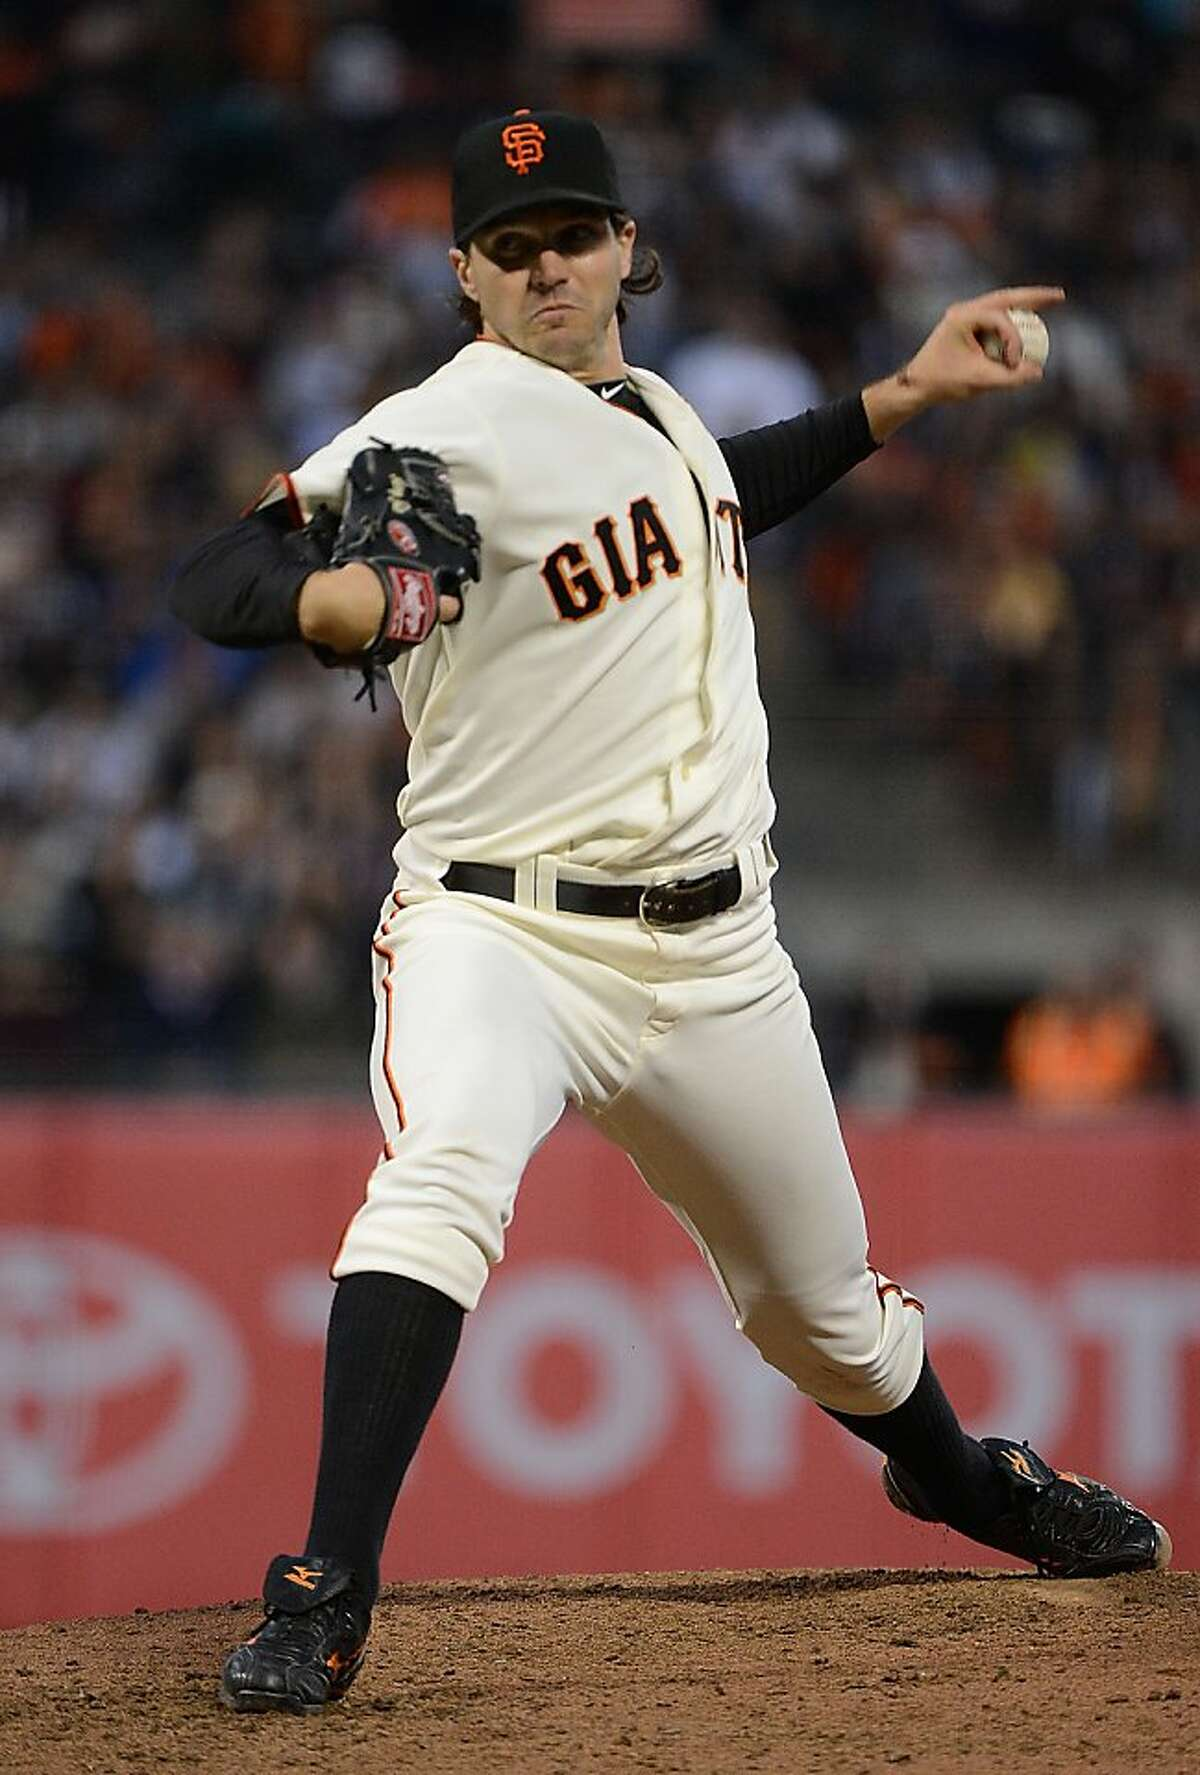 SAN FRANCISCO, CA - JUNE 25: Barry Zito #75 of the San Francisco Giants pitches against the Los Angeles Dodgers at AT&T Park on June 25, 2012 in San Francisco, California. (Photo by Thearon W. Henderson/Getty Images)